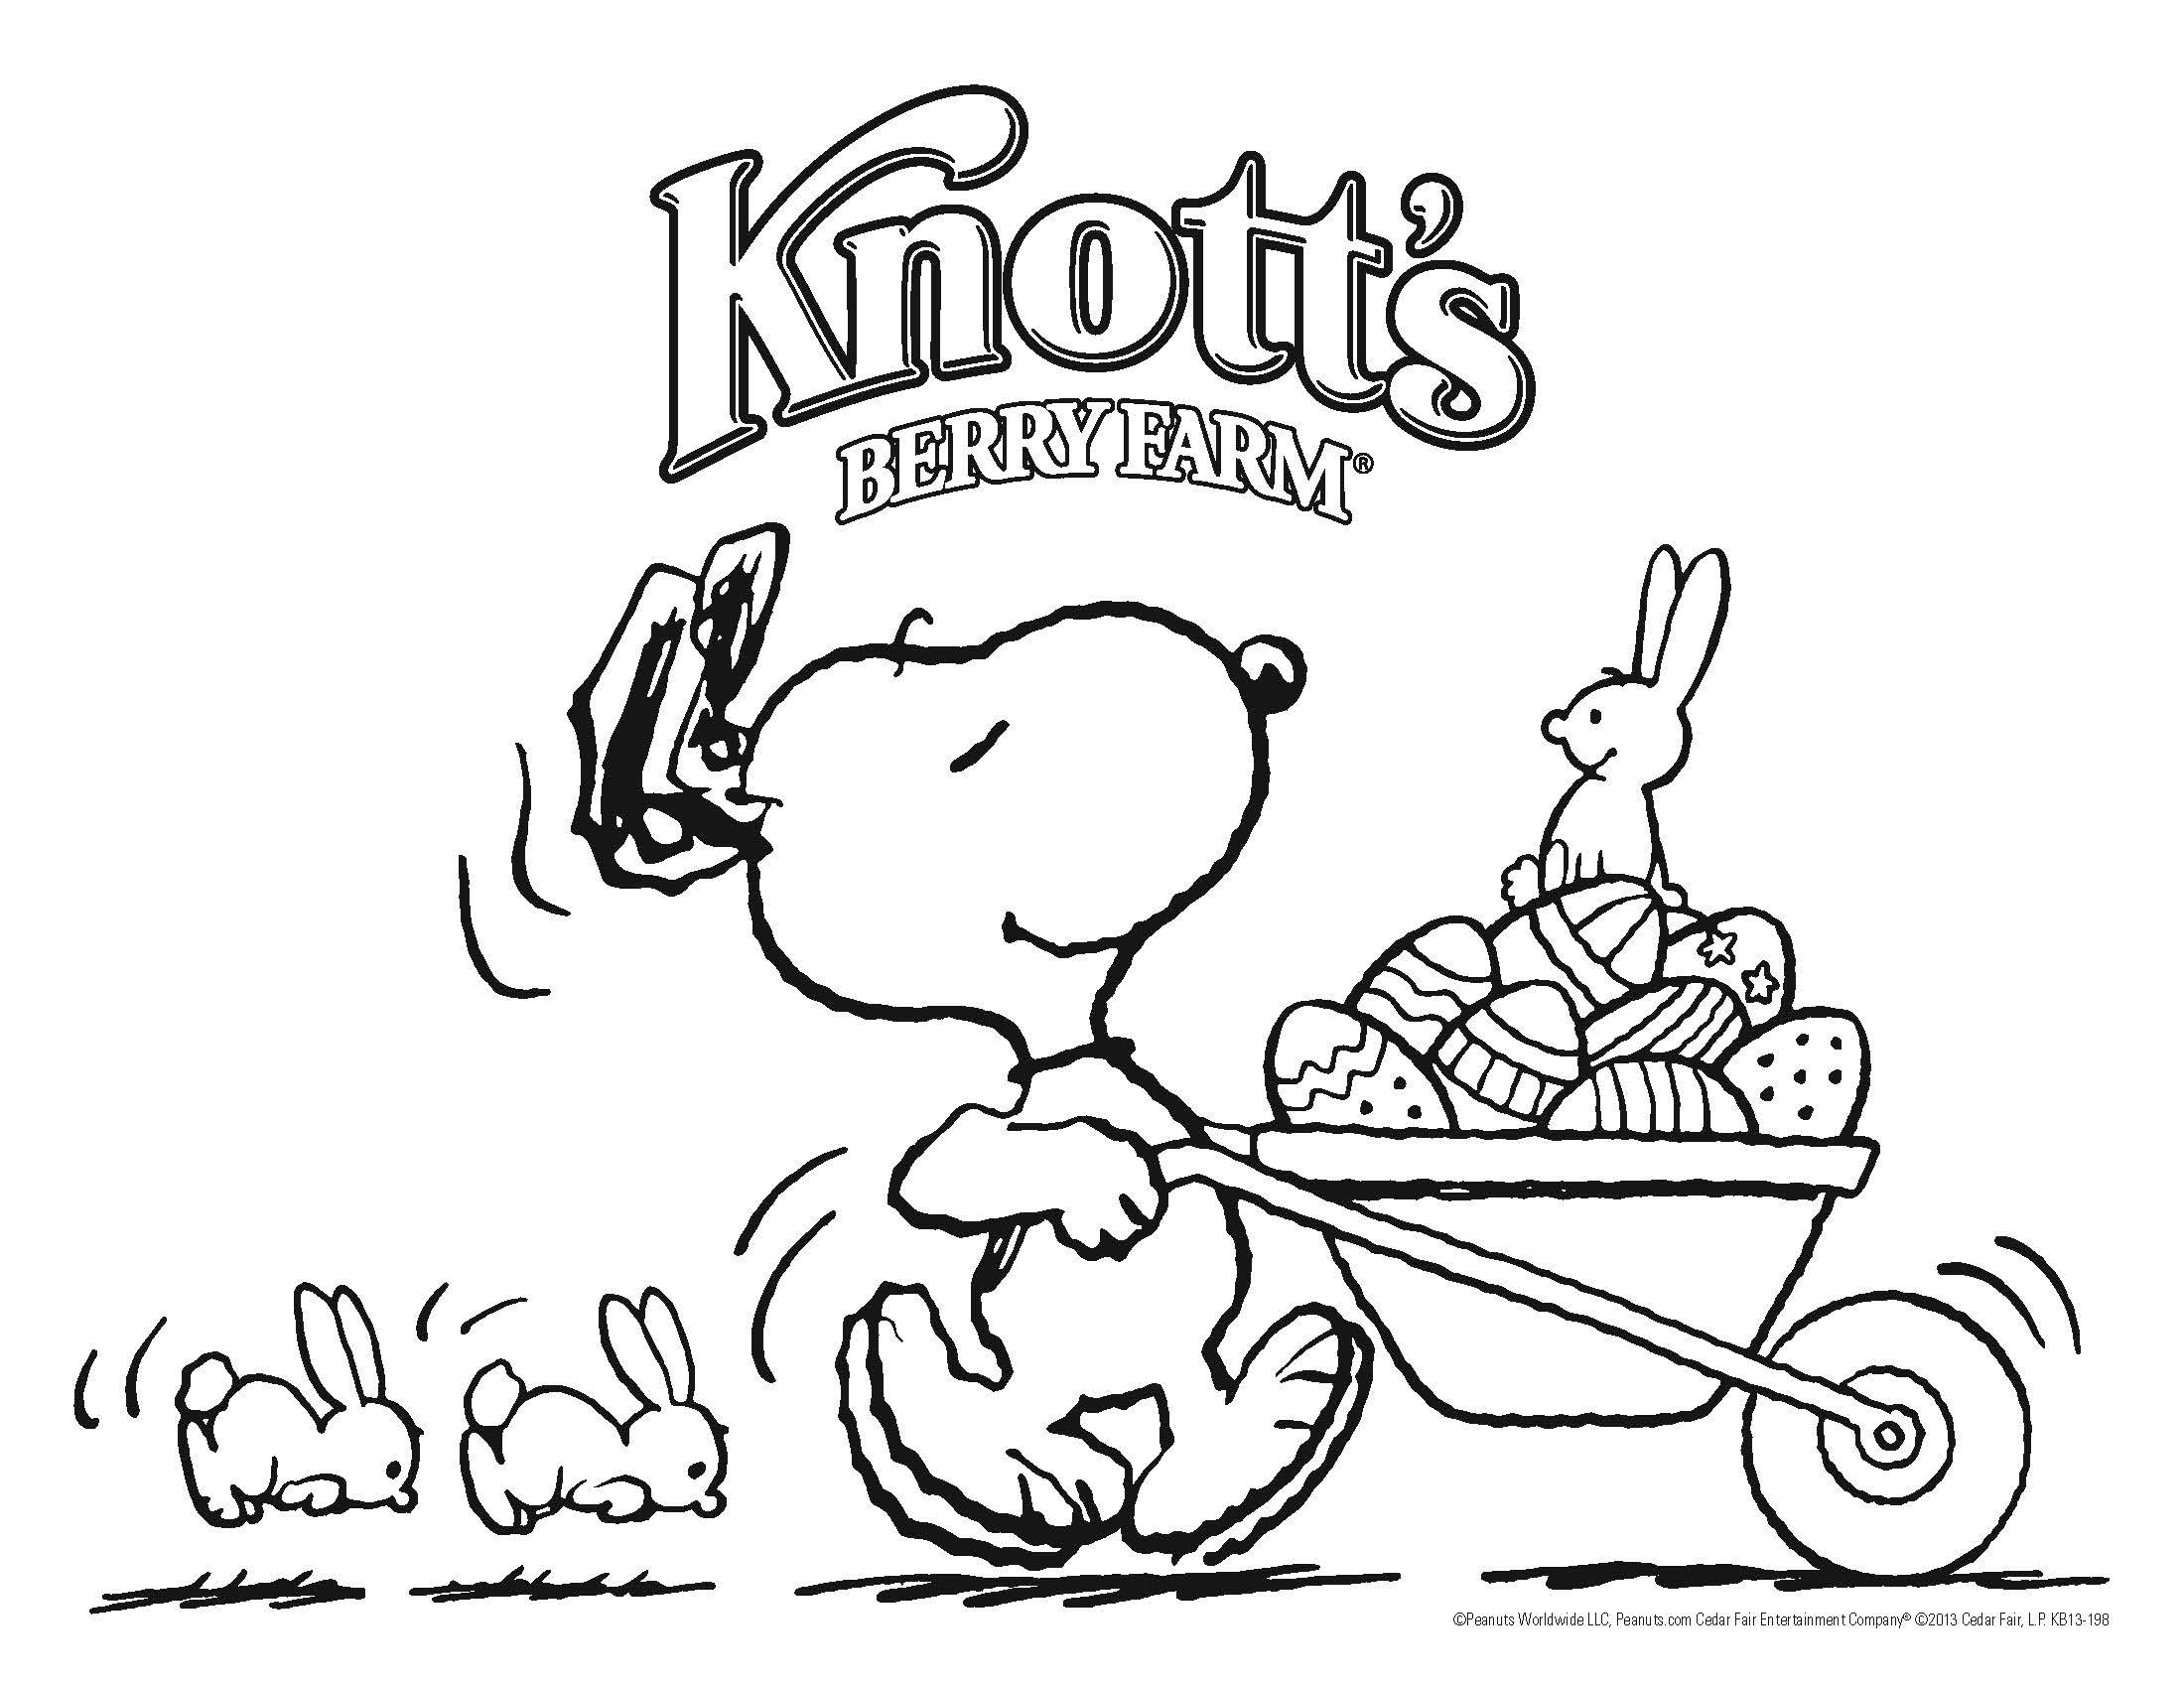 Snoopy #35 (Cartoons) – Printable Coloring Pages Free Printable Snoopy Images